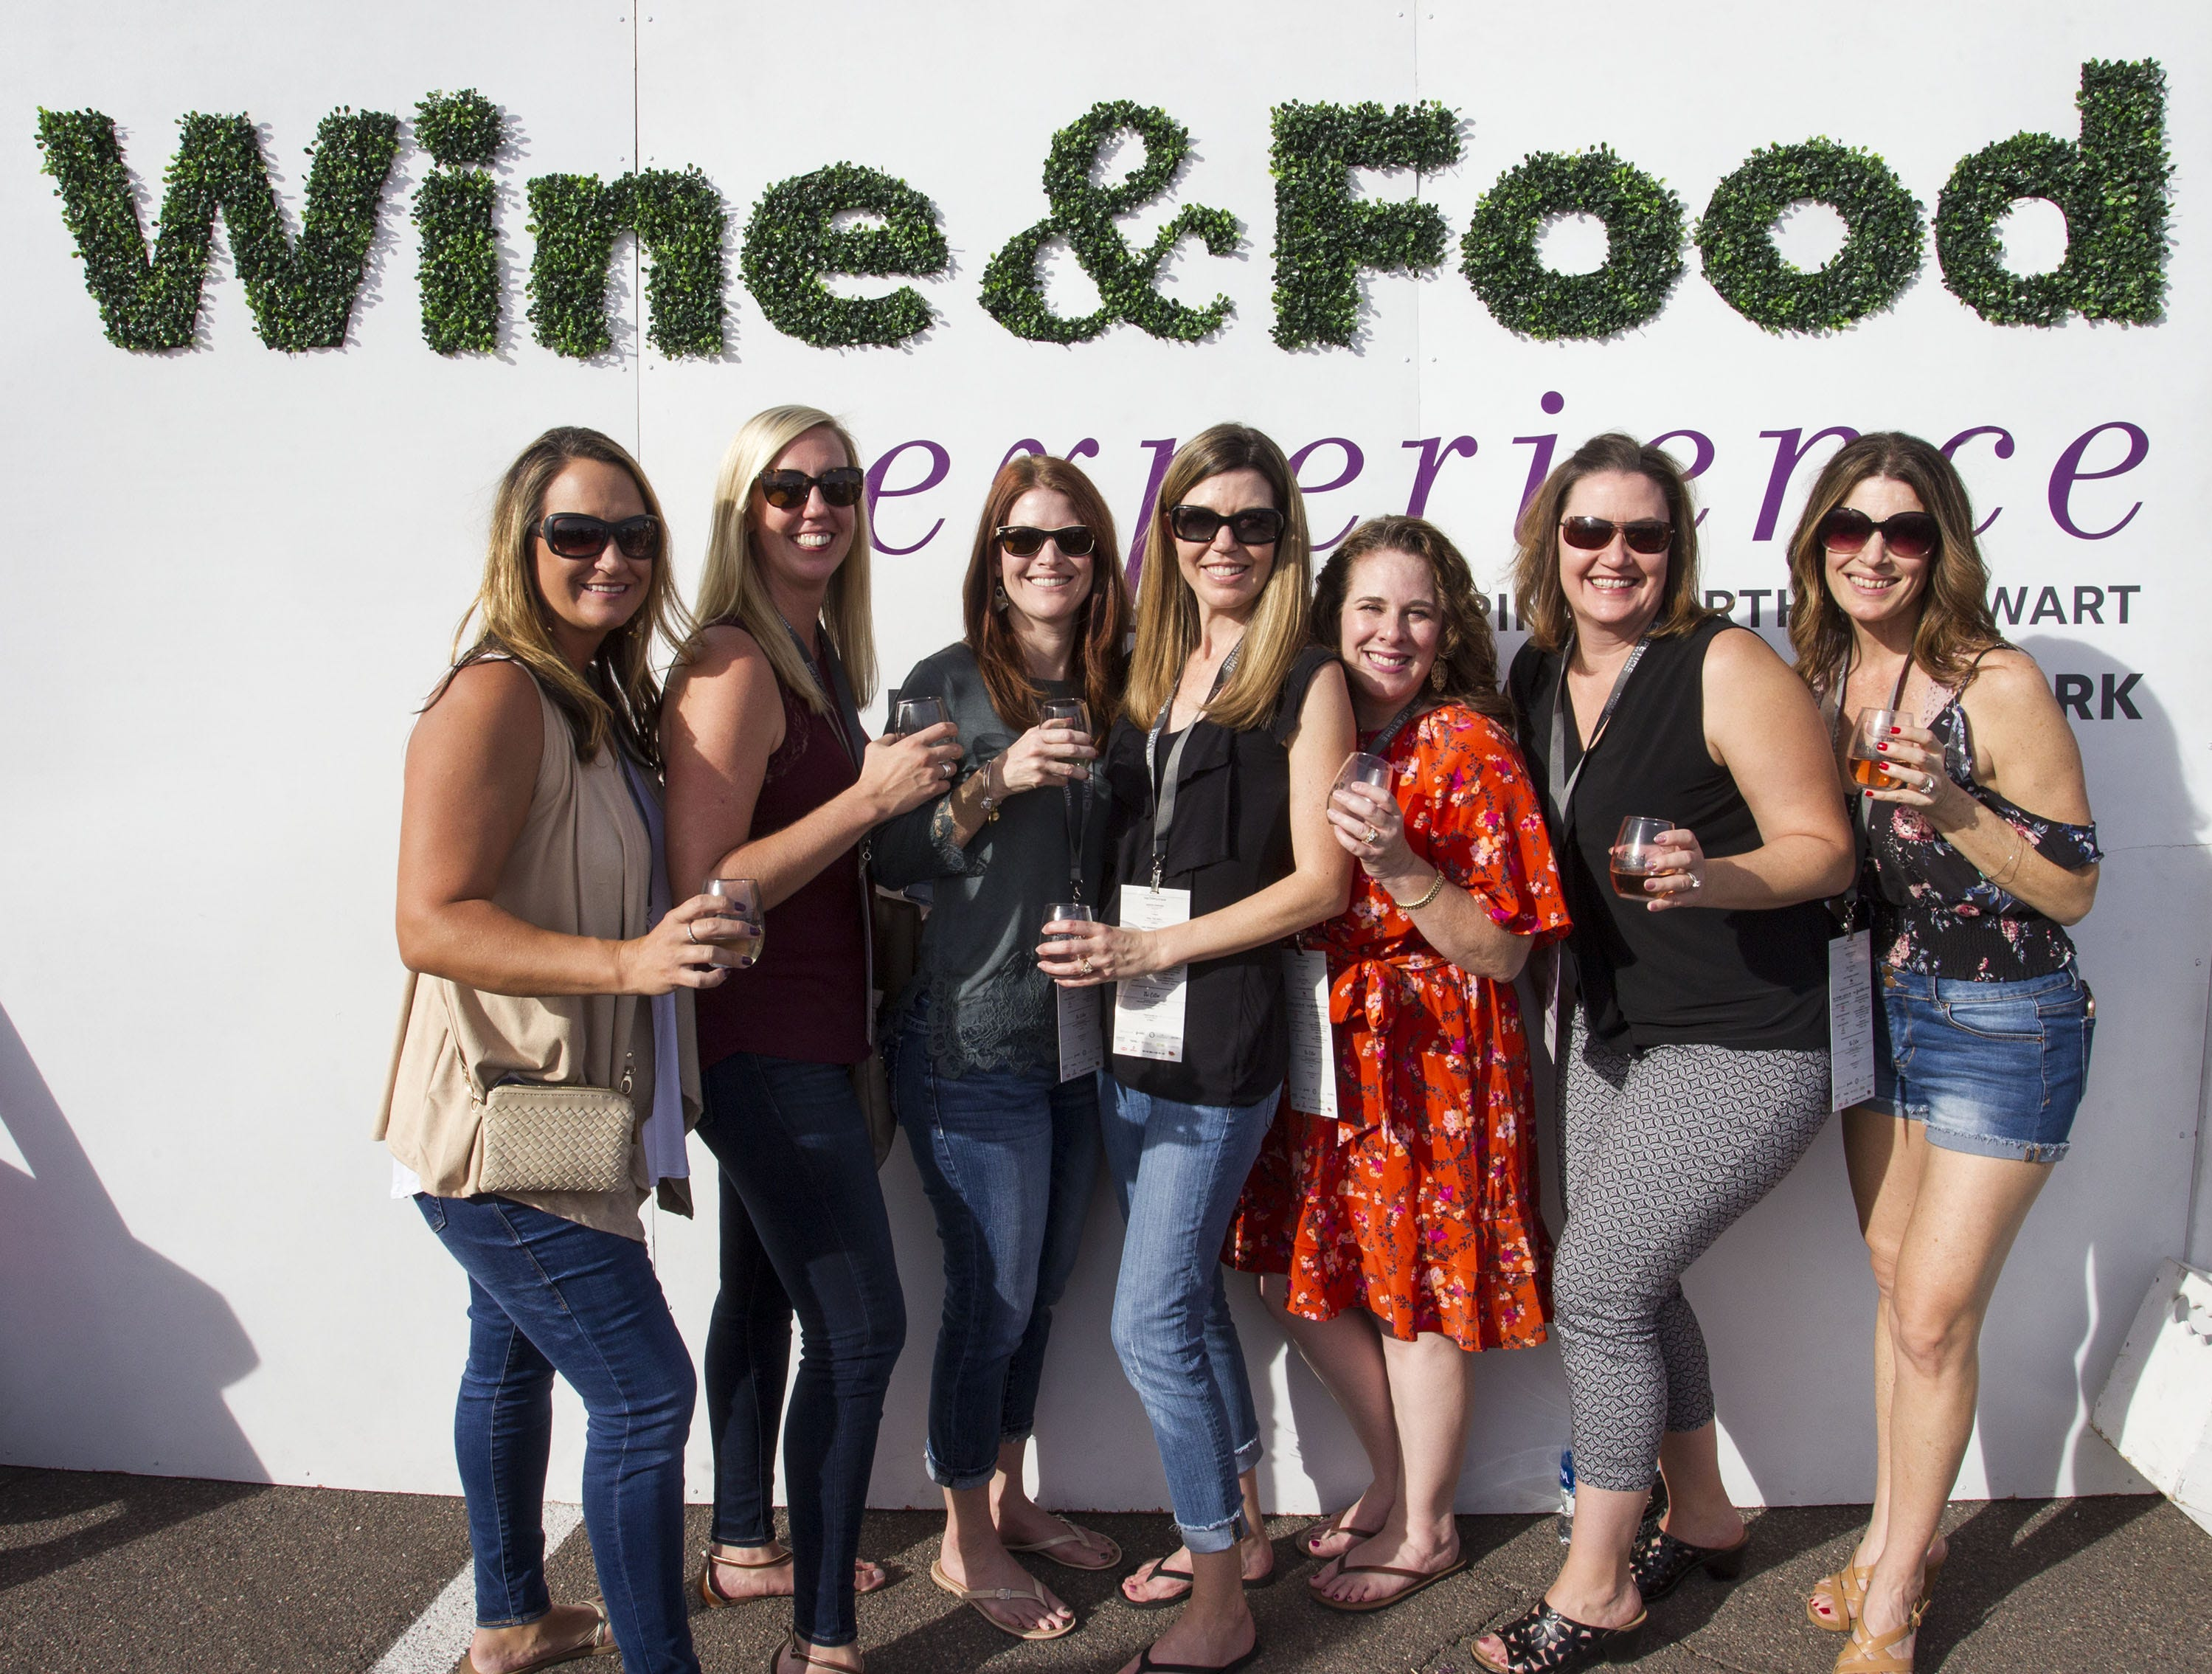 Wine and Food enthusiasts pose during the azcentral Wine & Food Experience at WestWorld of Scottsdale, Sunday, Nov. 4, 2018.